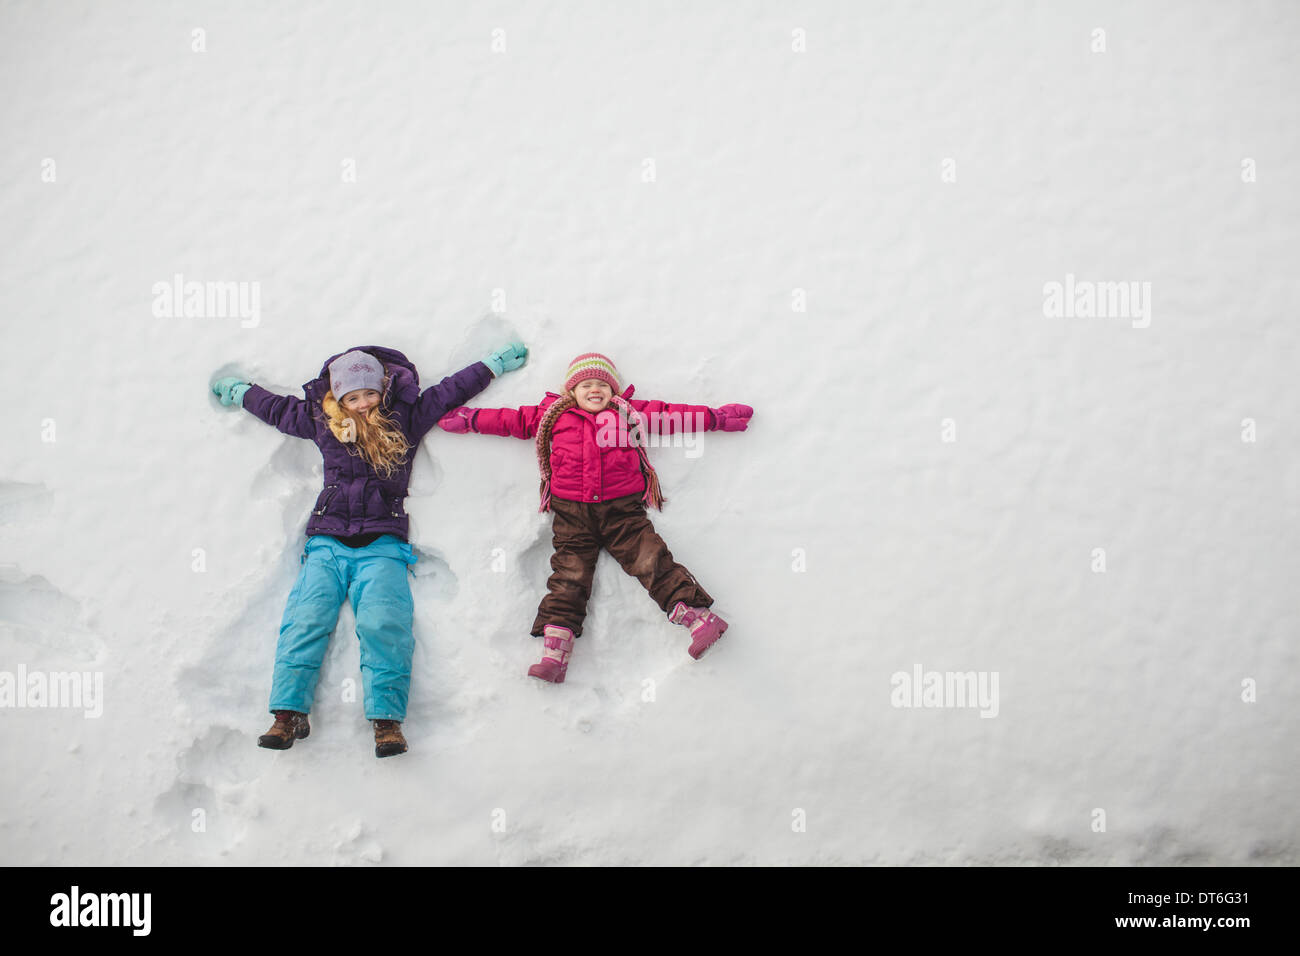 Two sisters playing, making snow angels in snow - Stock Image